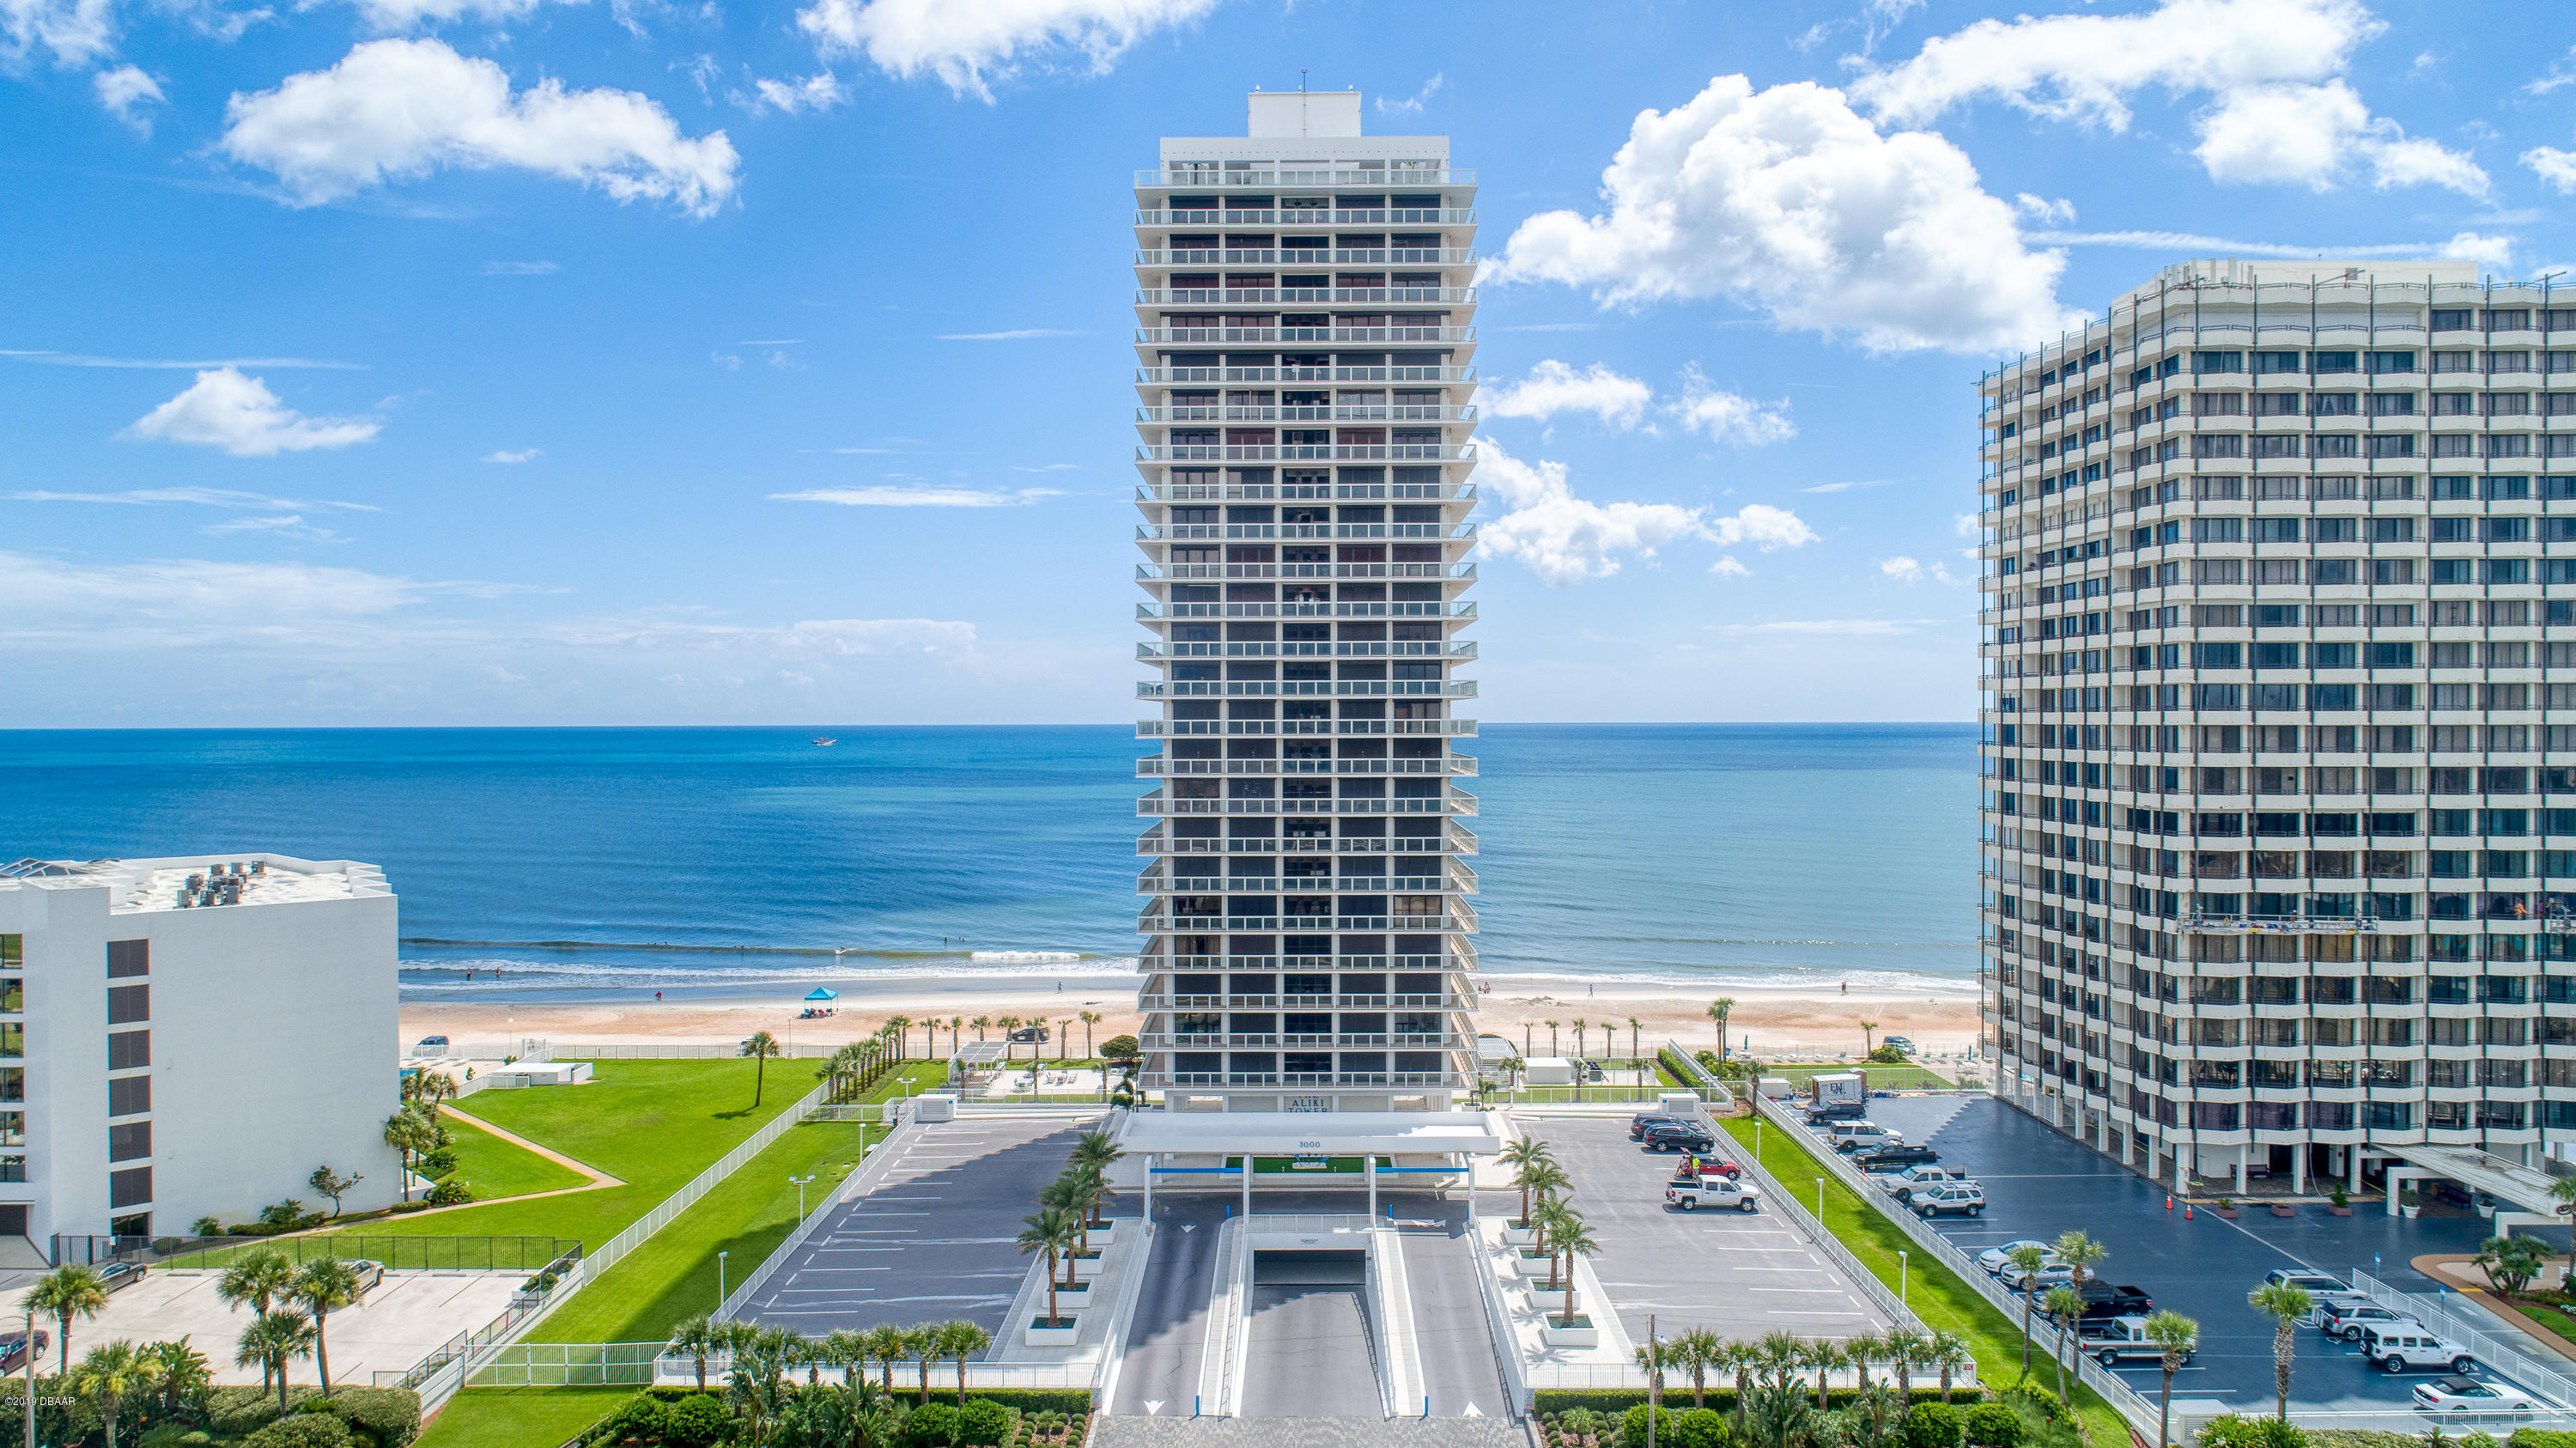 3000 N Atlantic Avenue, Daytona Beach Shores, Florida